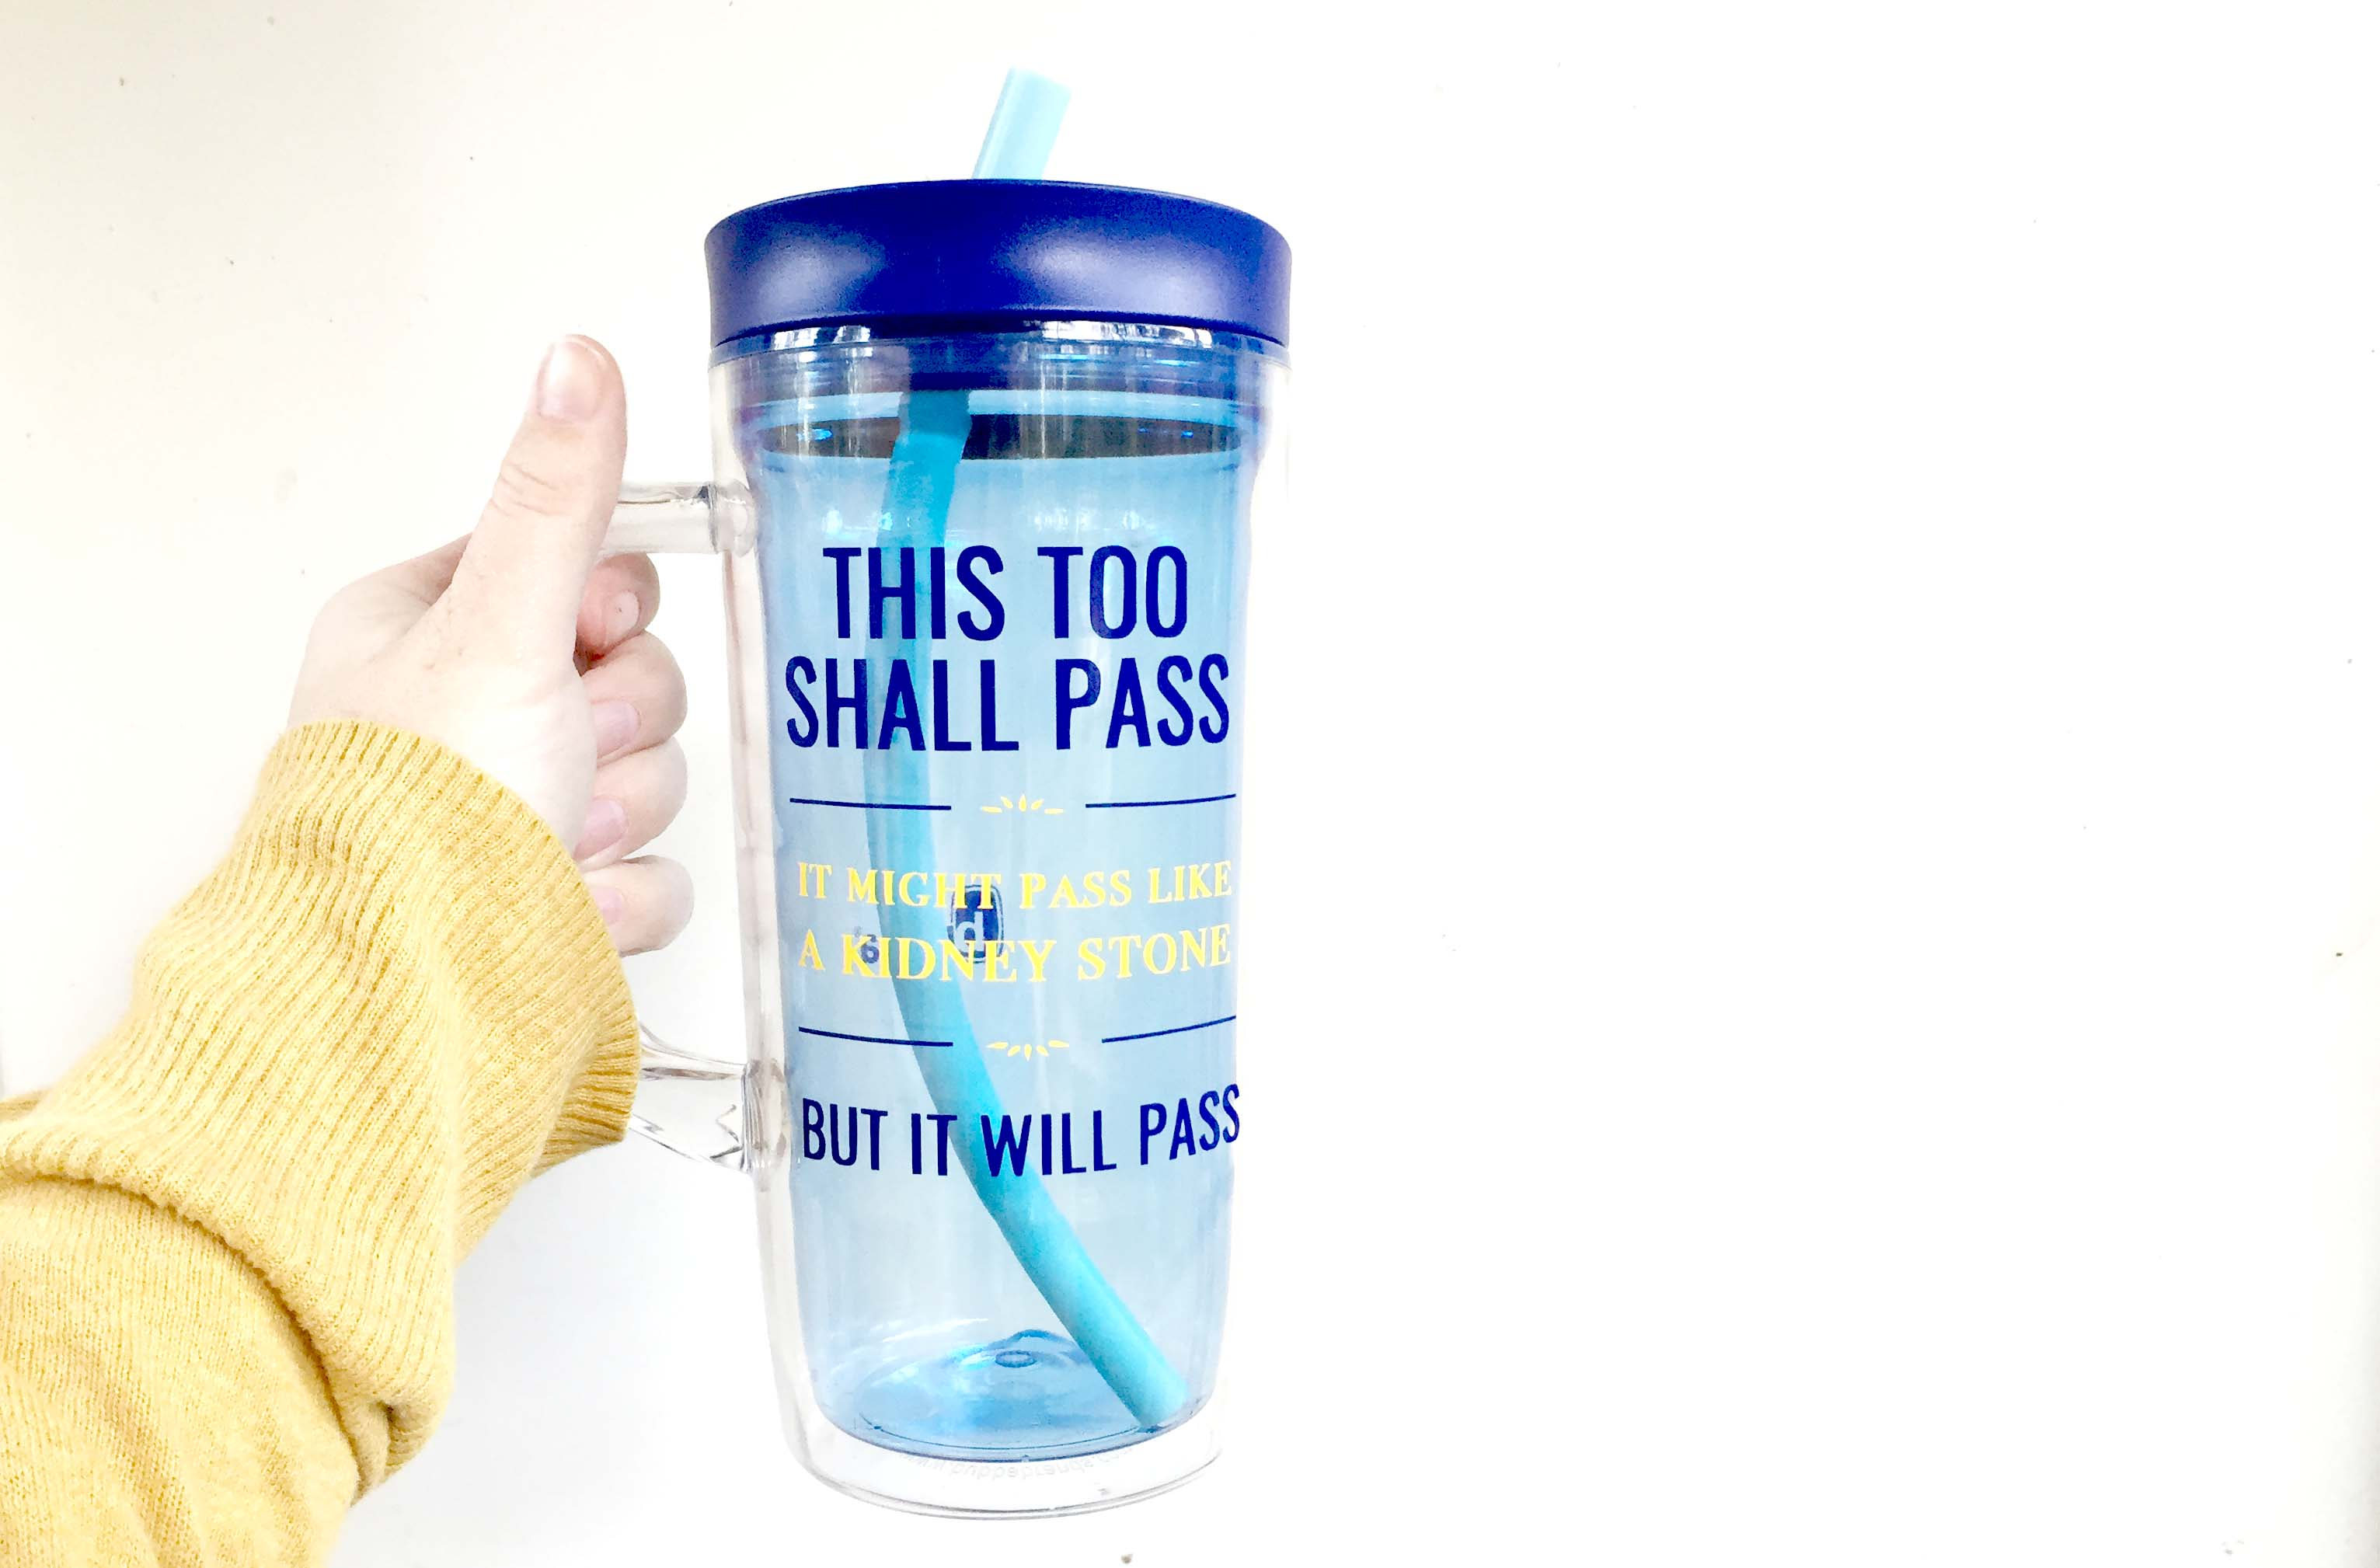 This Too Shall Pass It Might Pass Like A Kidney Stone